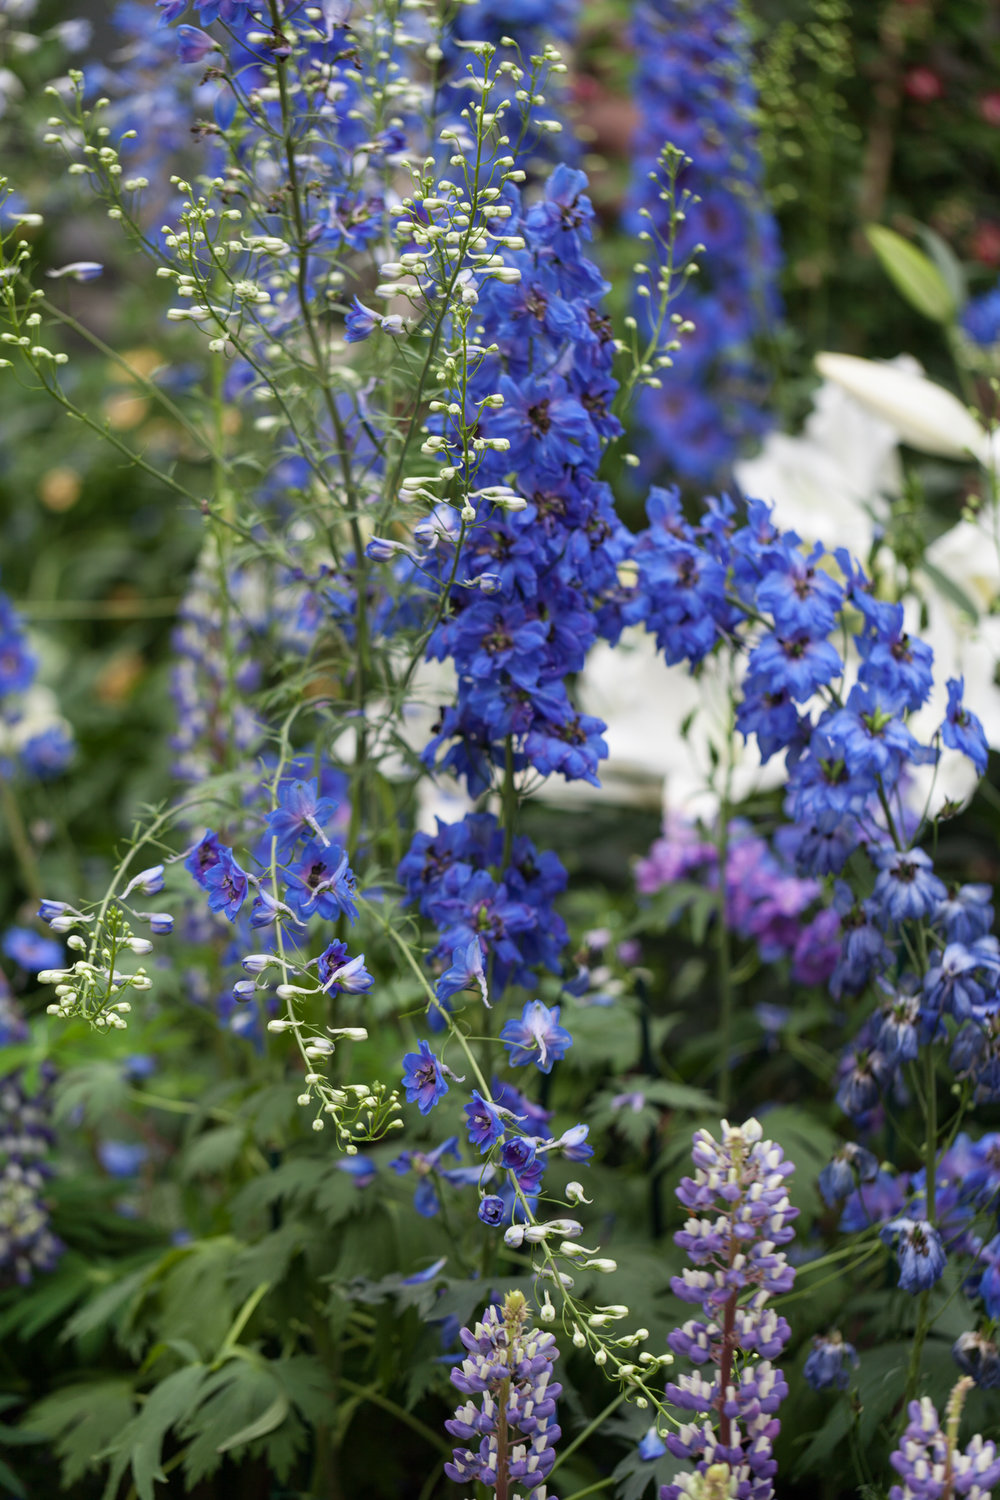 Larkspur (Delphinium sp.) flaunting their purple and blue flowers.